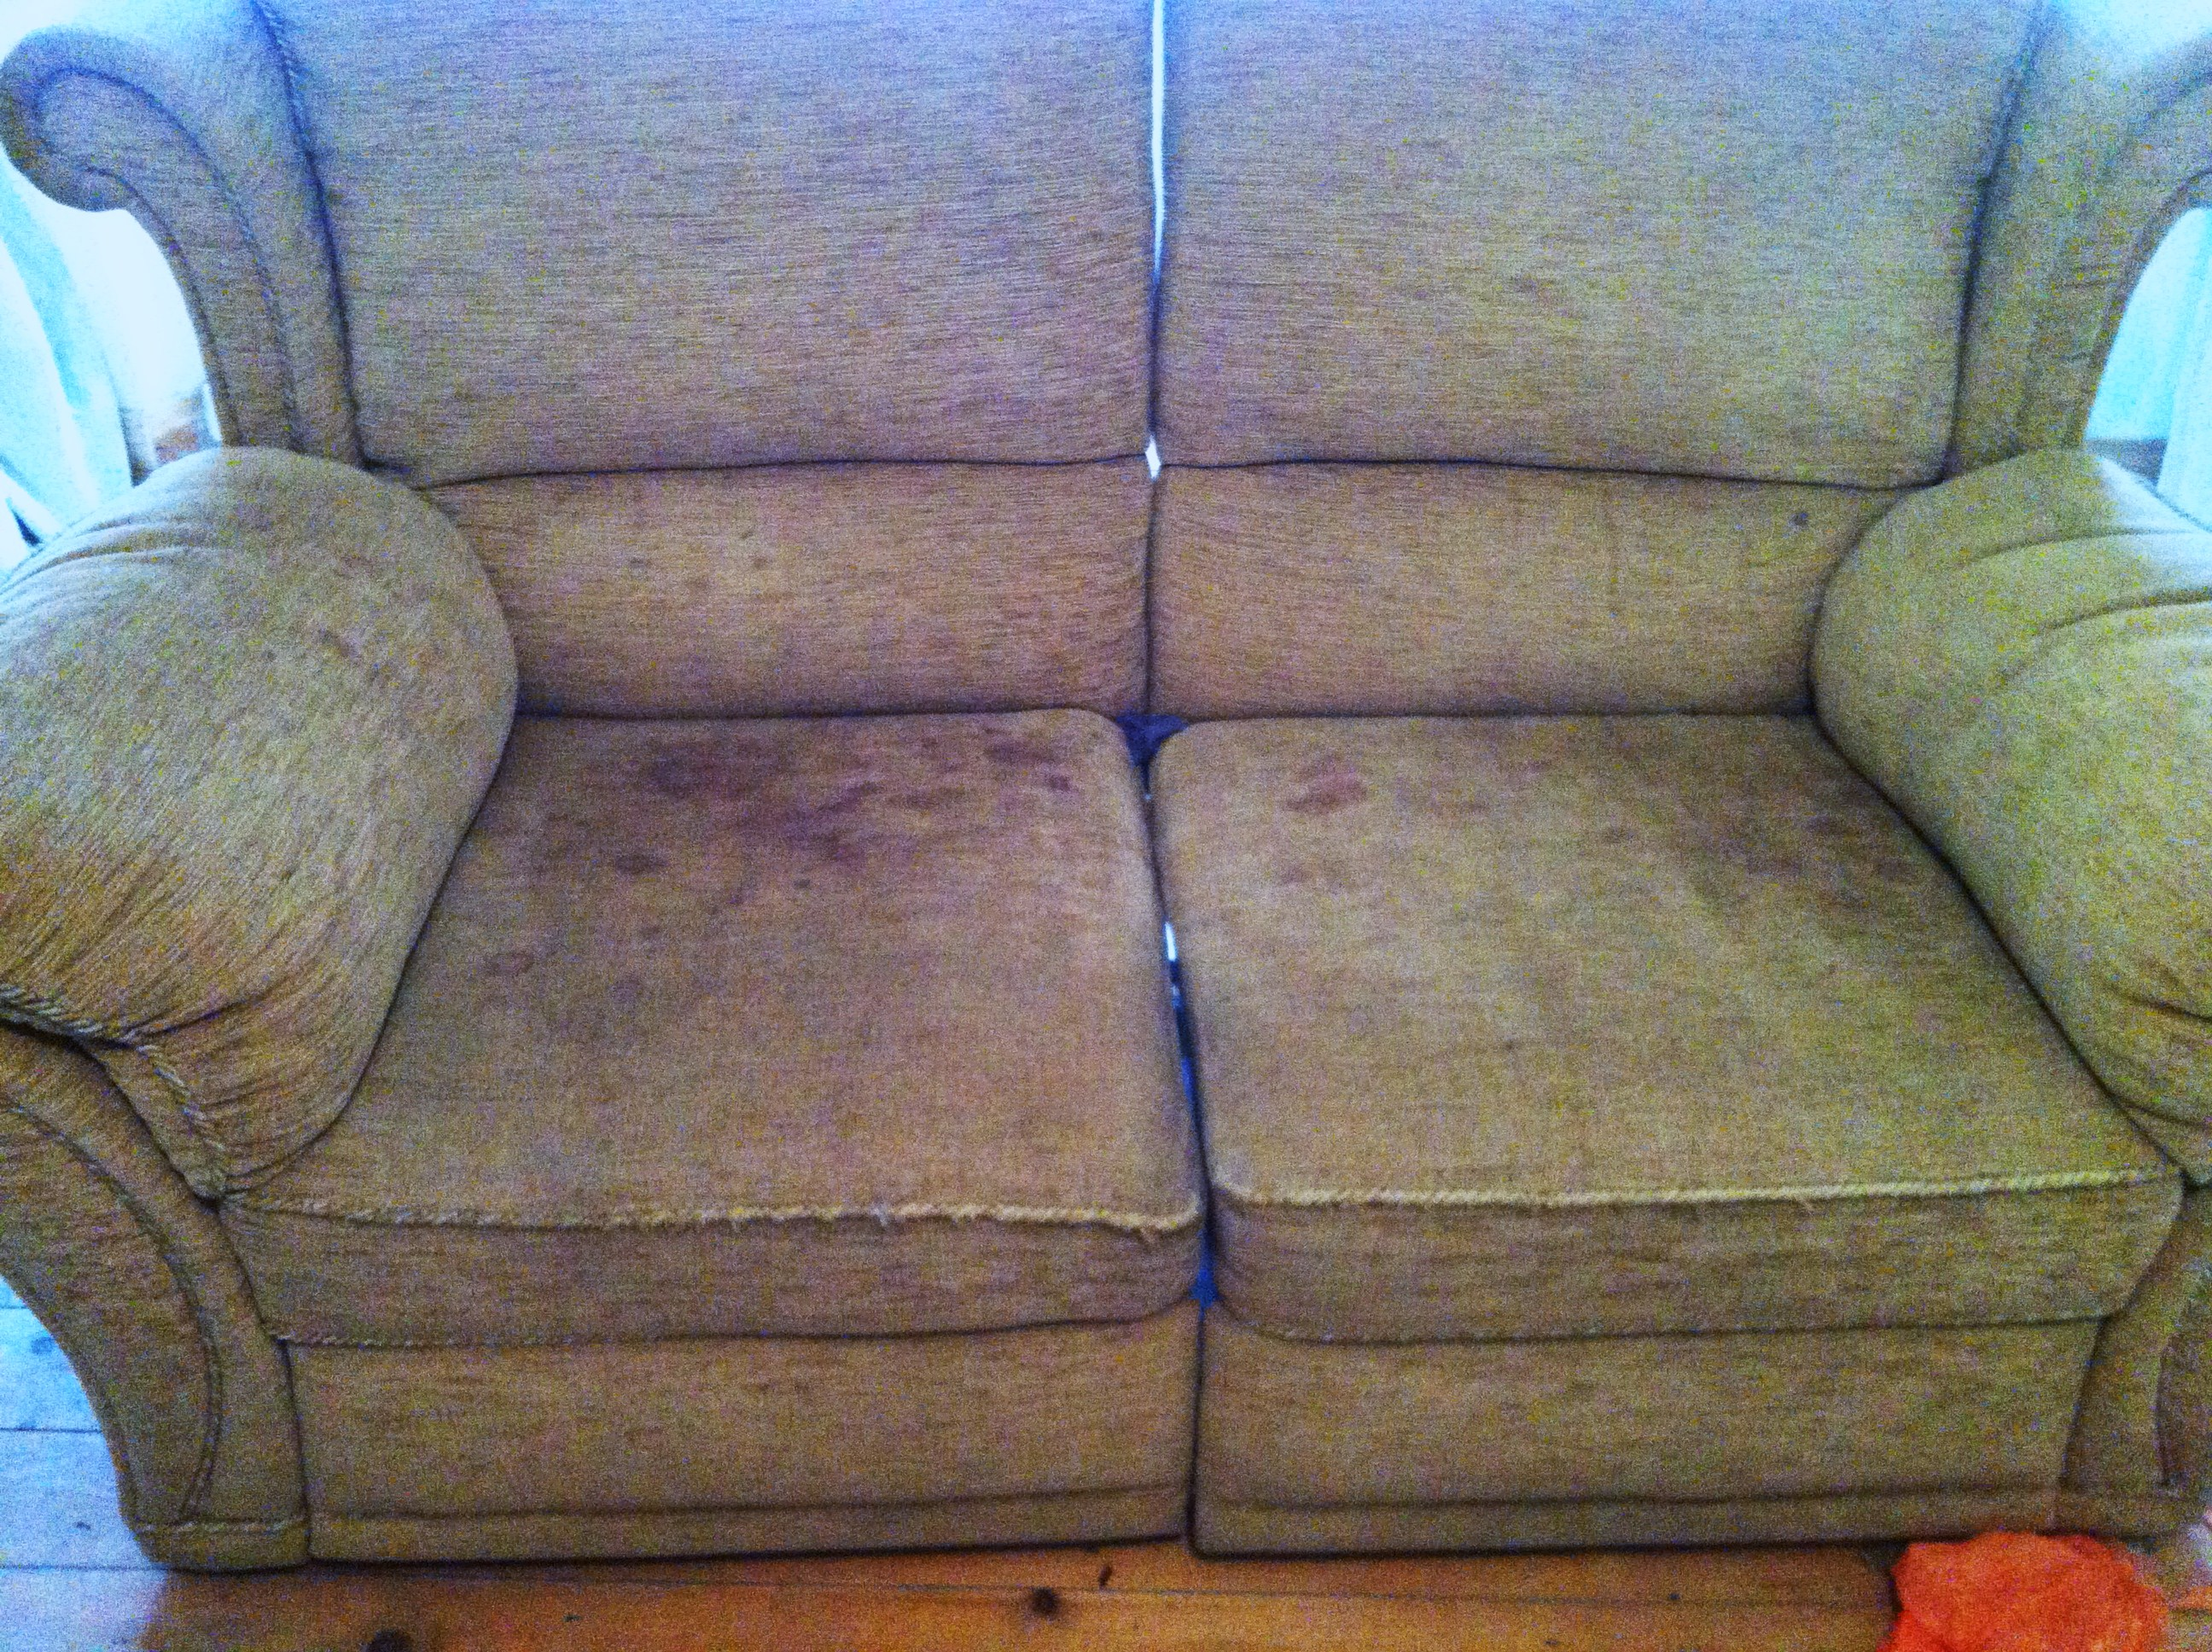 Different Methods of Removing Coffee or Tea Stain on Upholstery